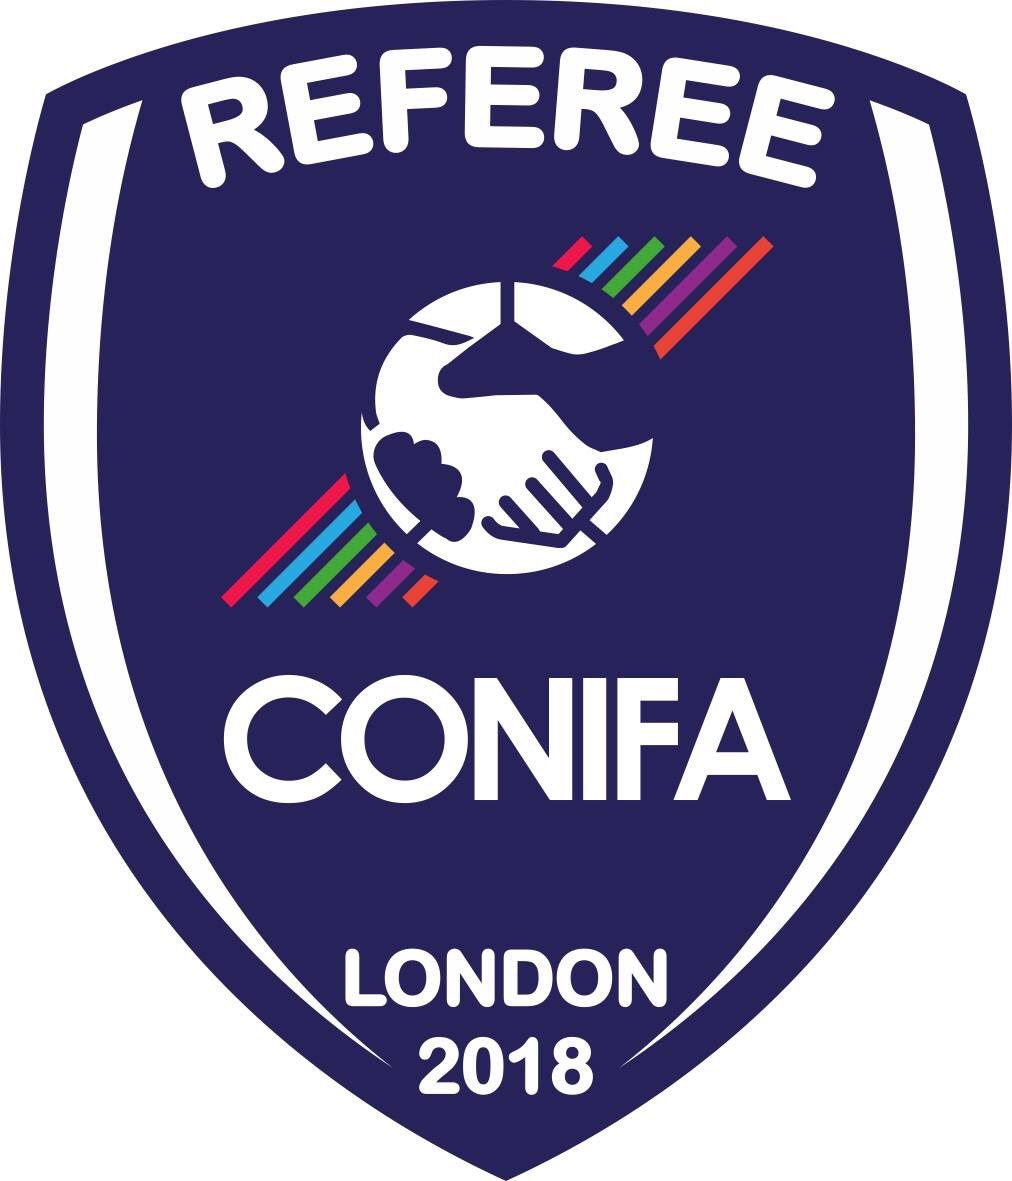 Hopefully the Isle of Man will be represented by a local referee #WFC2018 #London #Referee #Isle ofMan<br>http://pic.twitter.com/05u1nulwtS